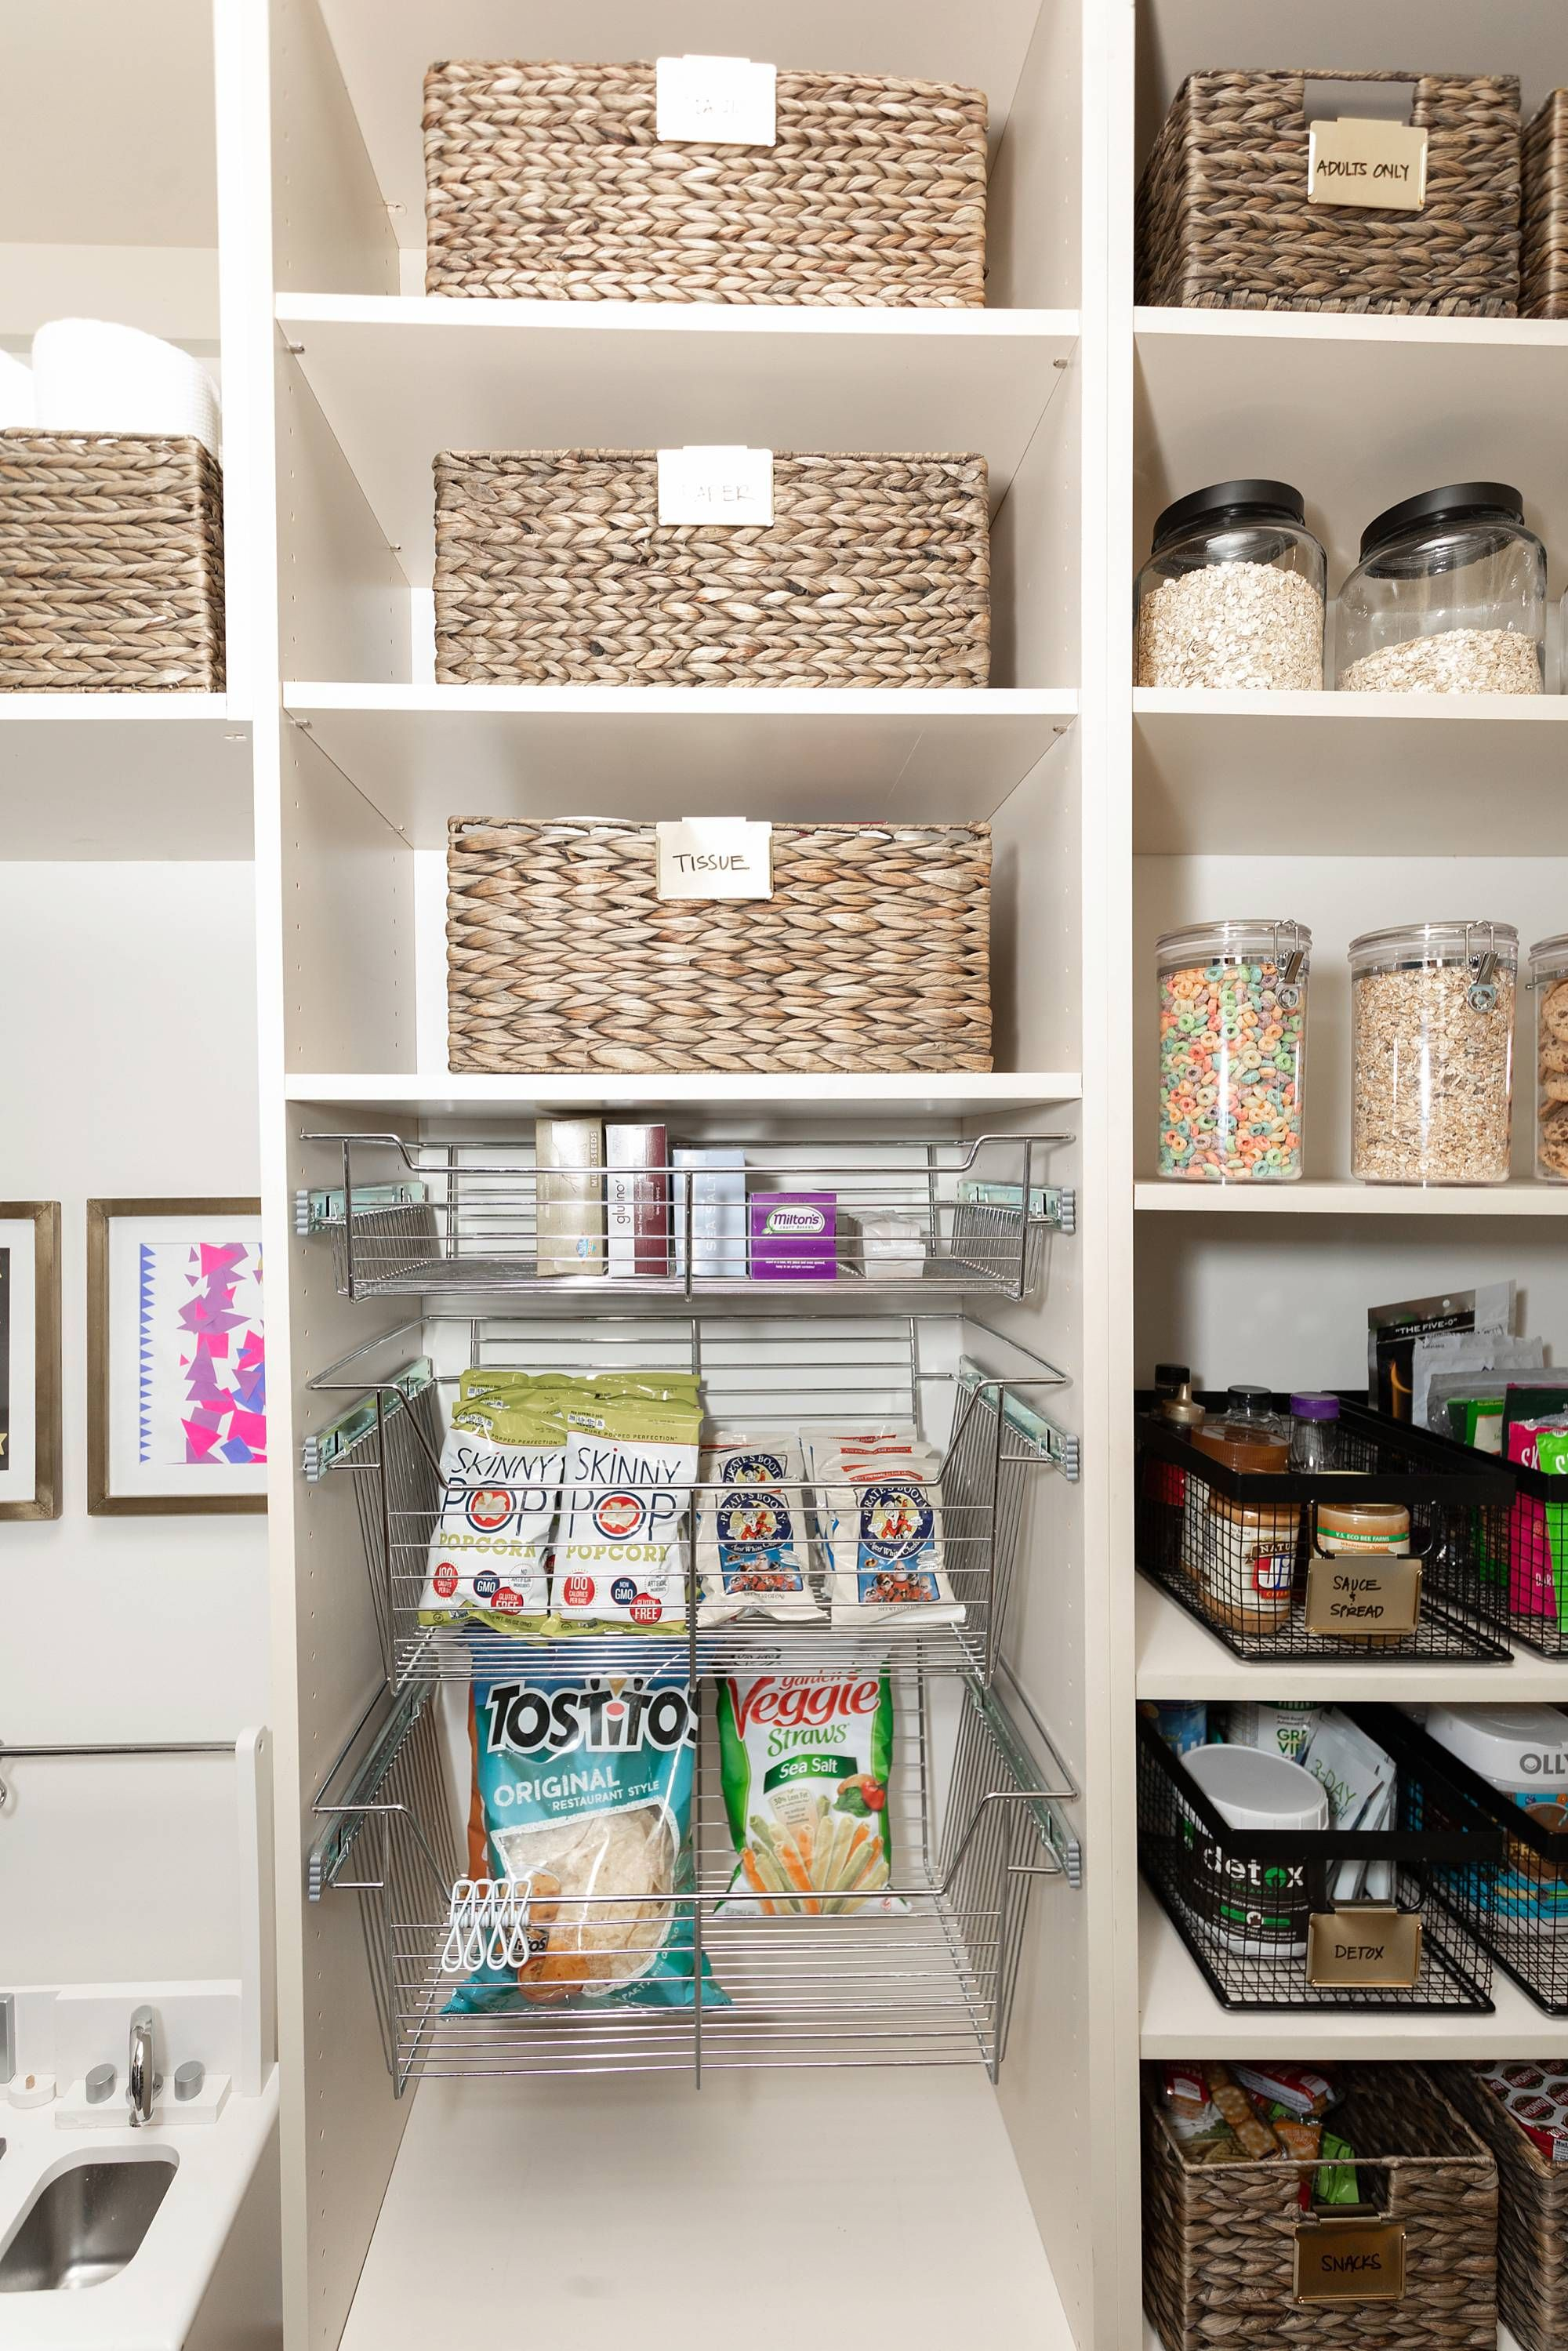 Home Organization Tips From House Of Turk Organize Clean